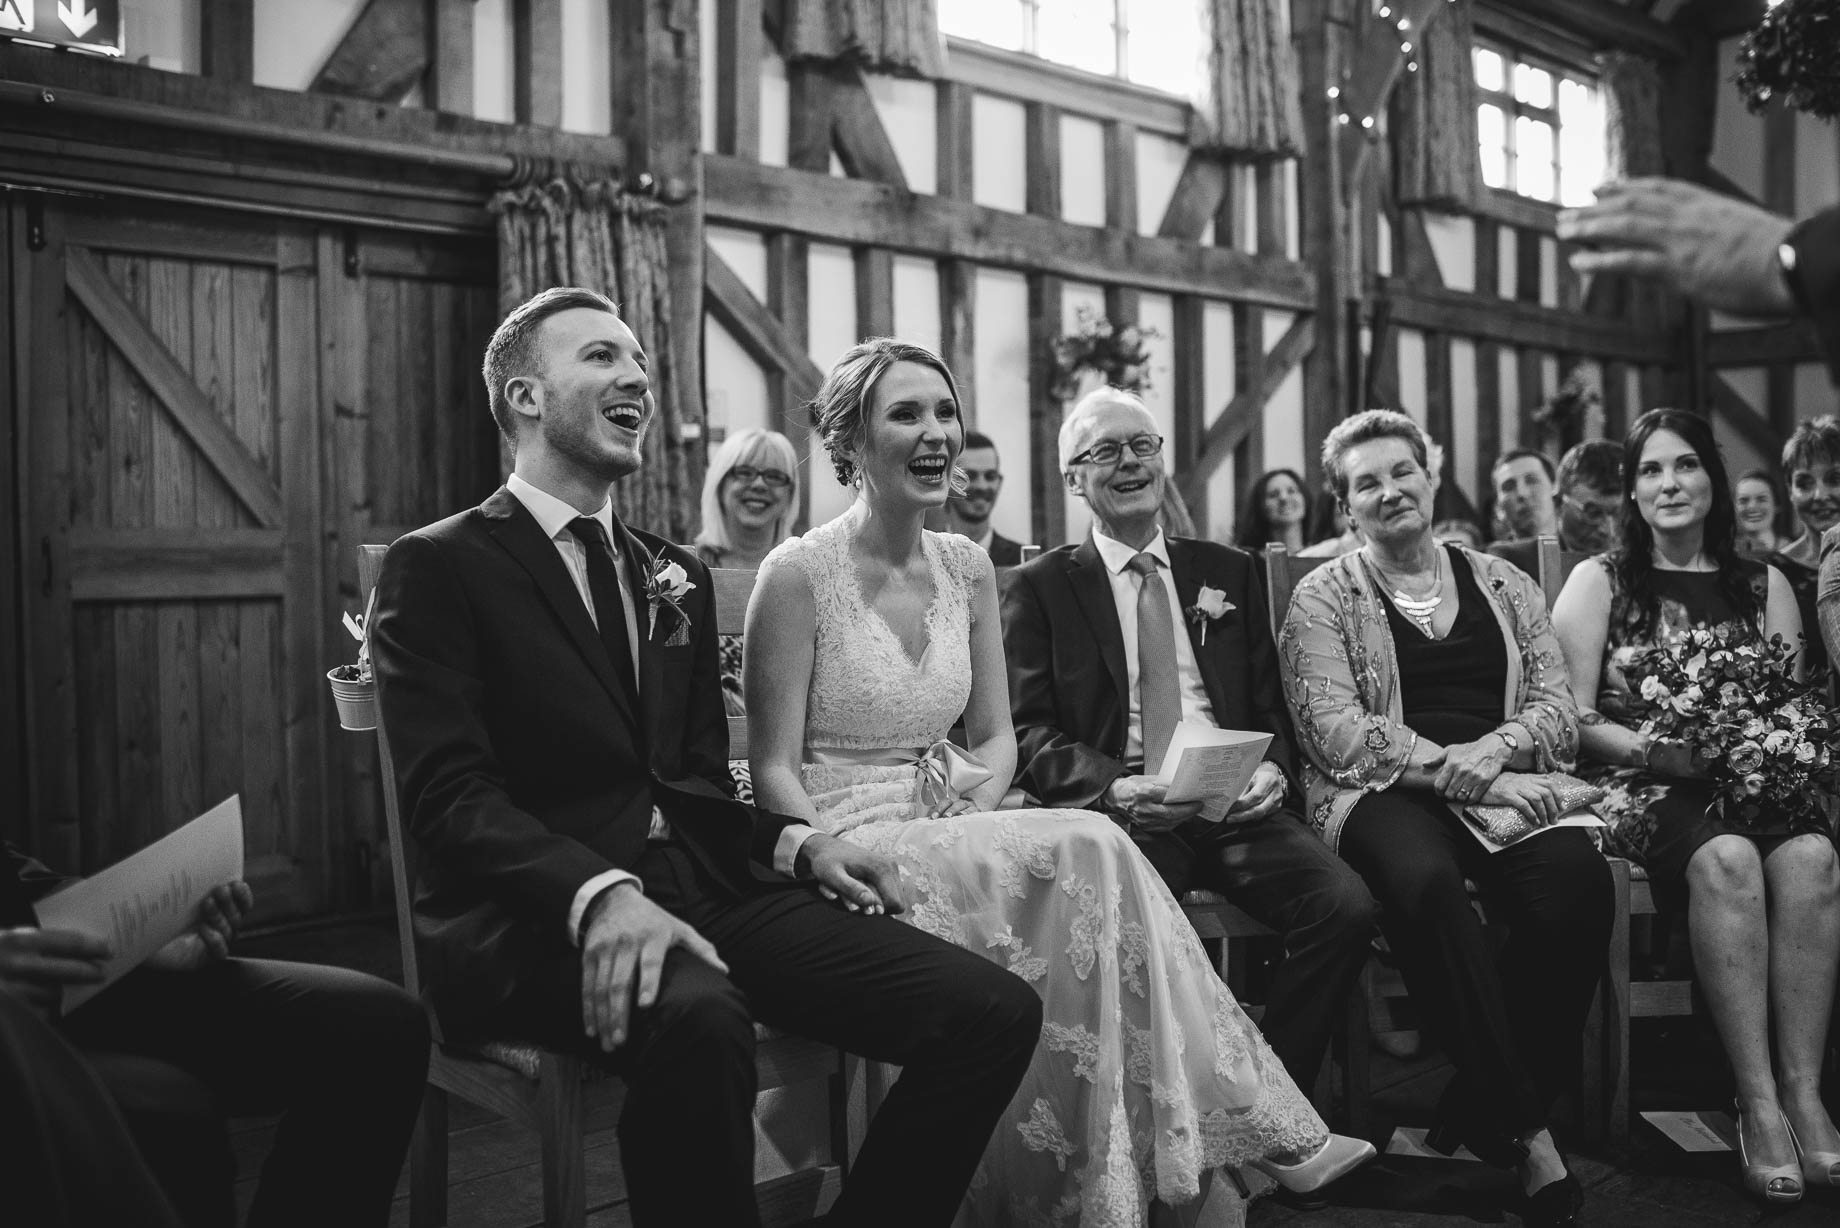 Surrey Wedding Photography by Guy Collier - Becca and James (54 of 145)